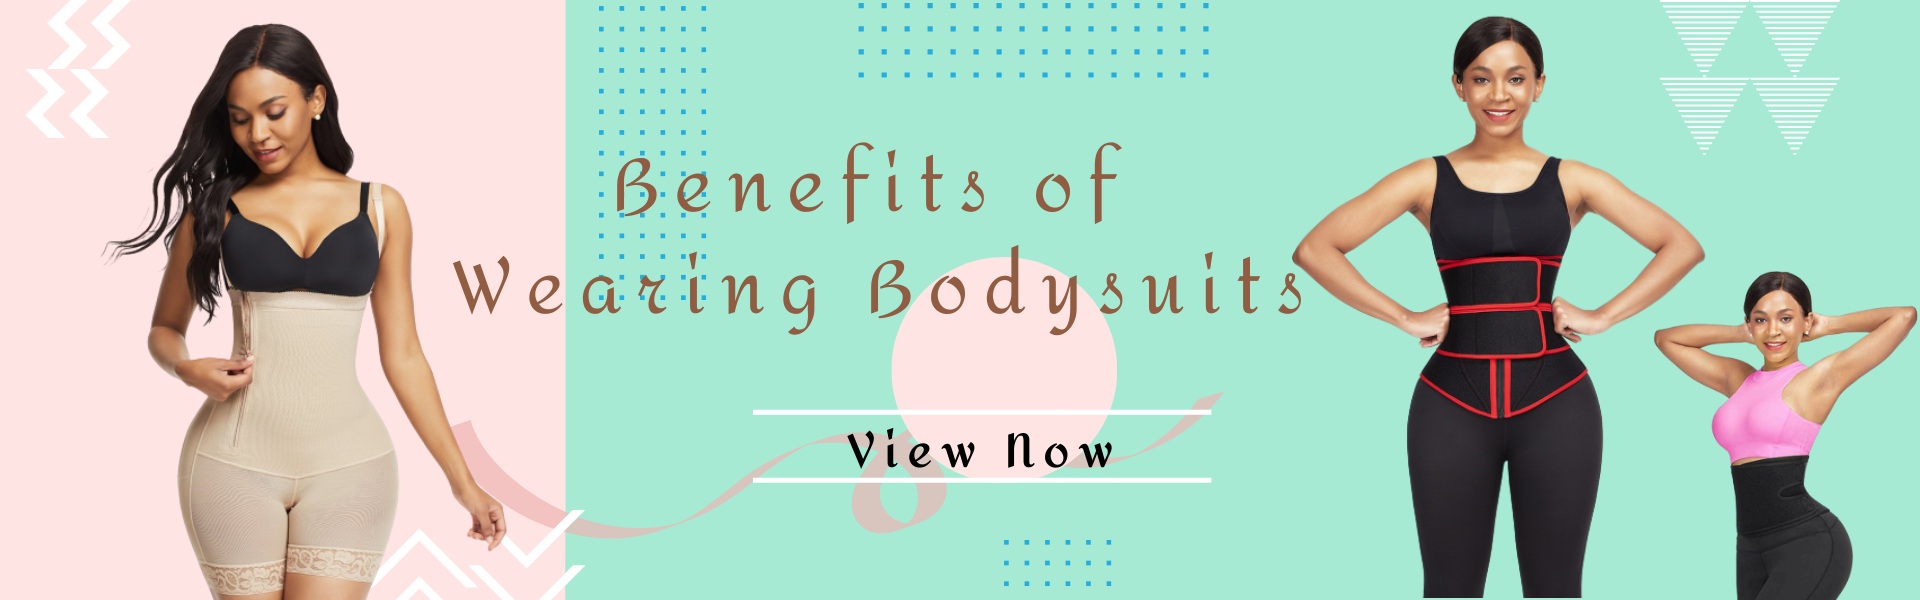 Benefits of Wearing Bodysuits